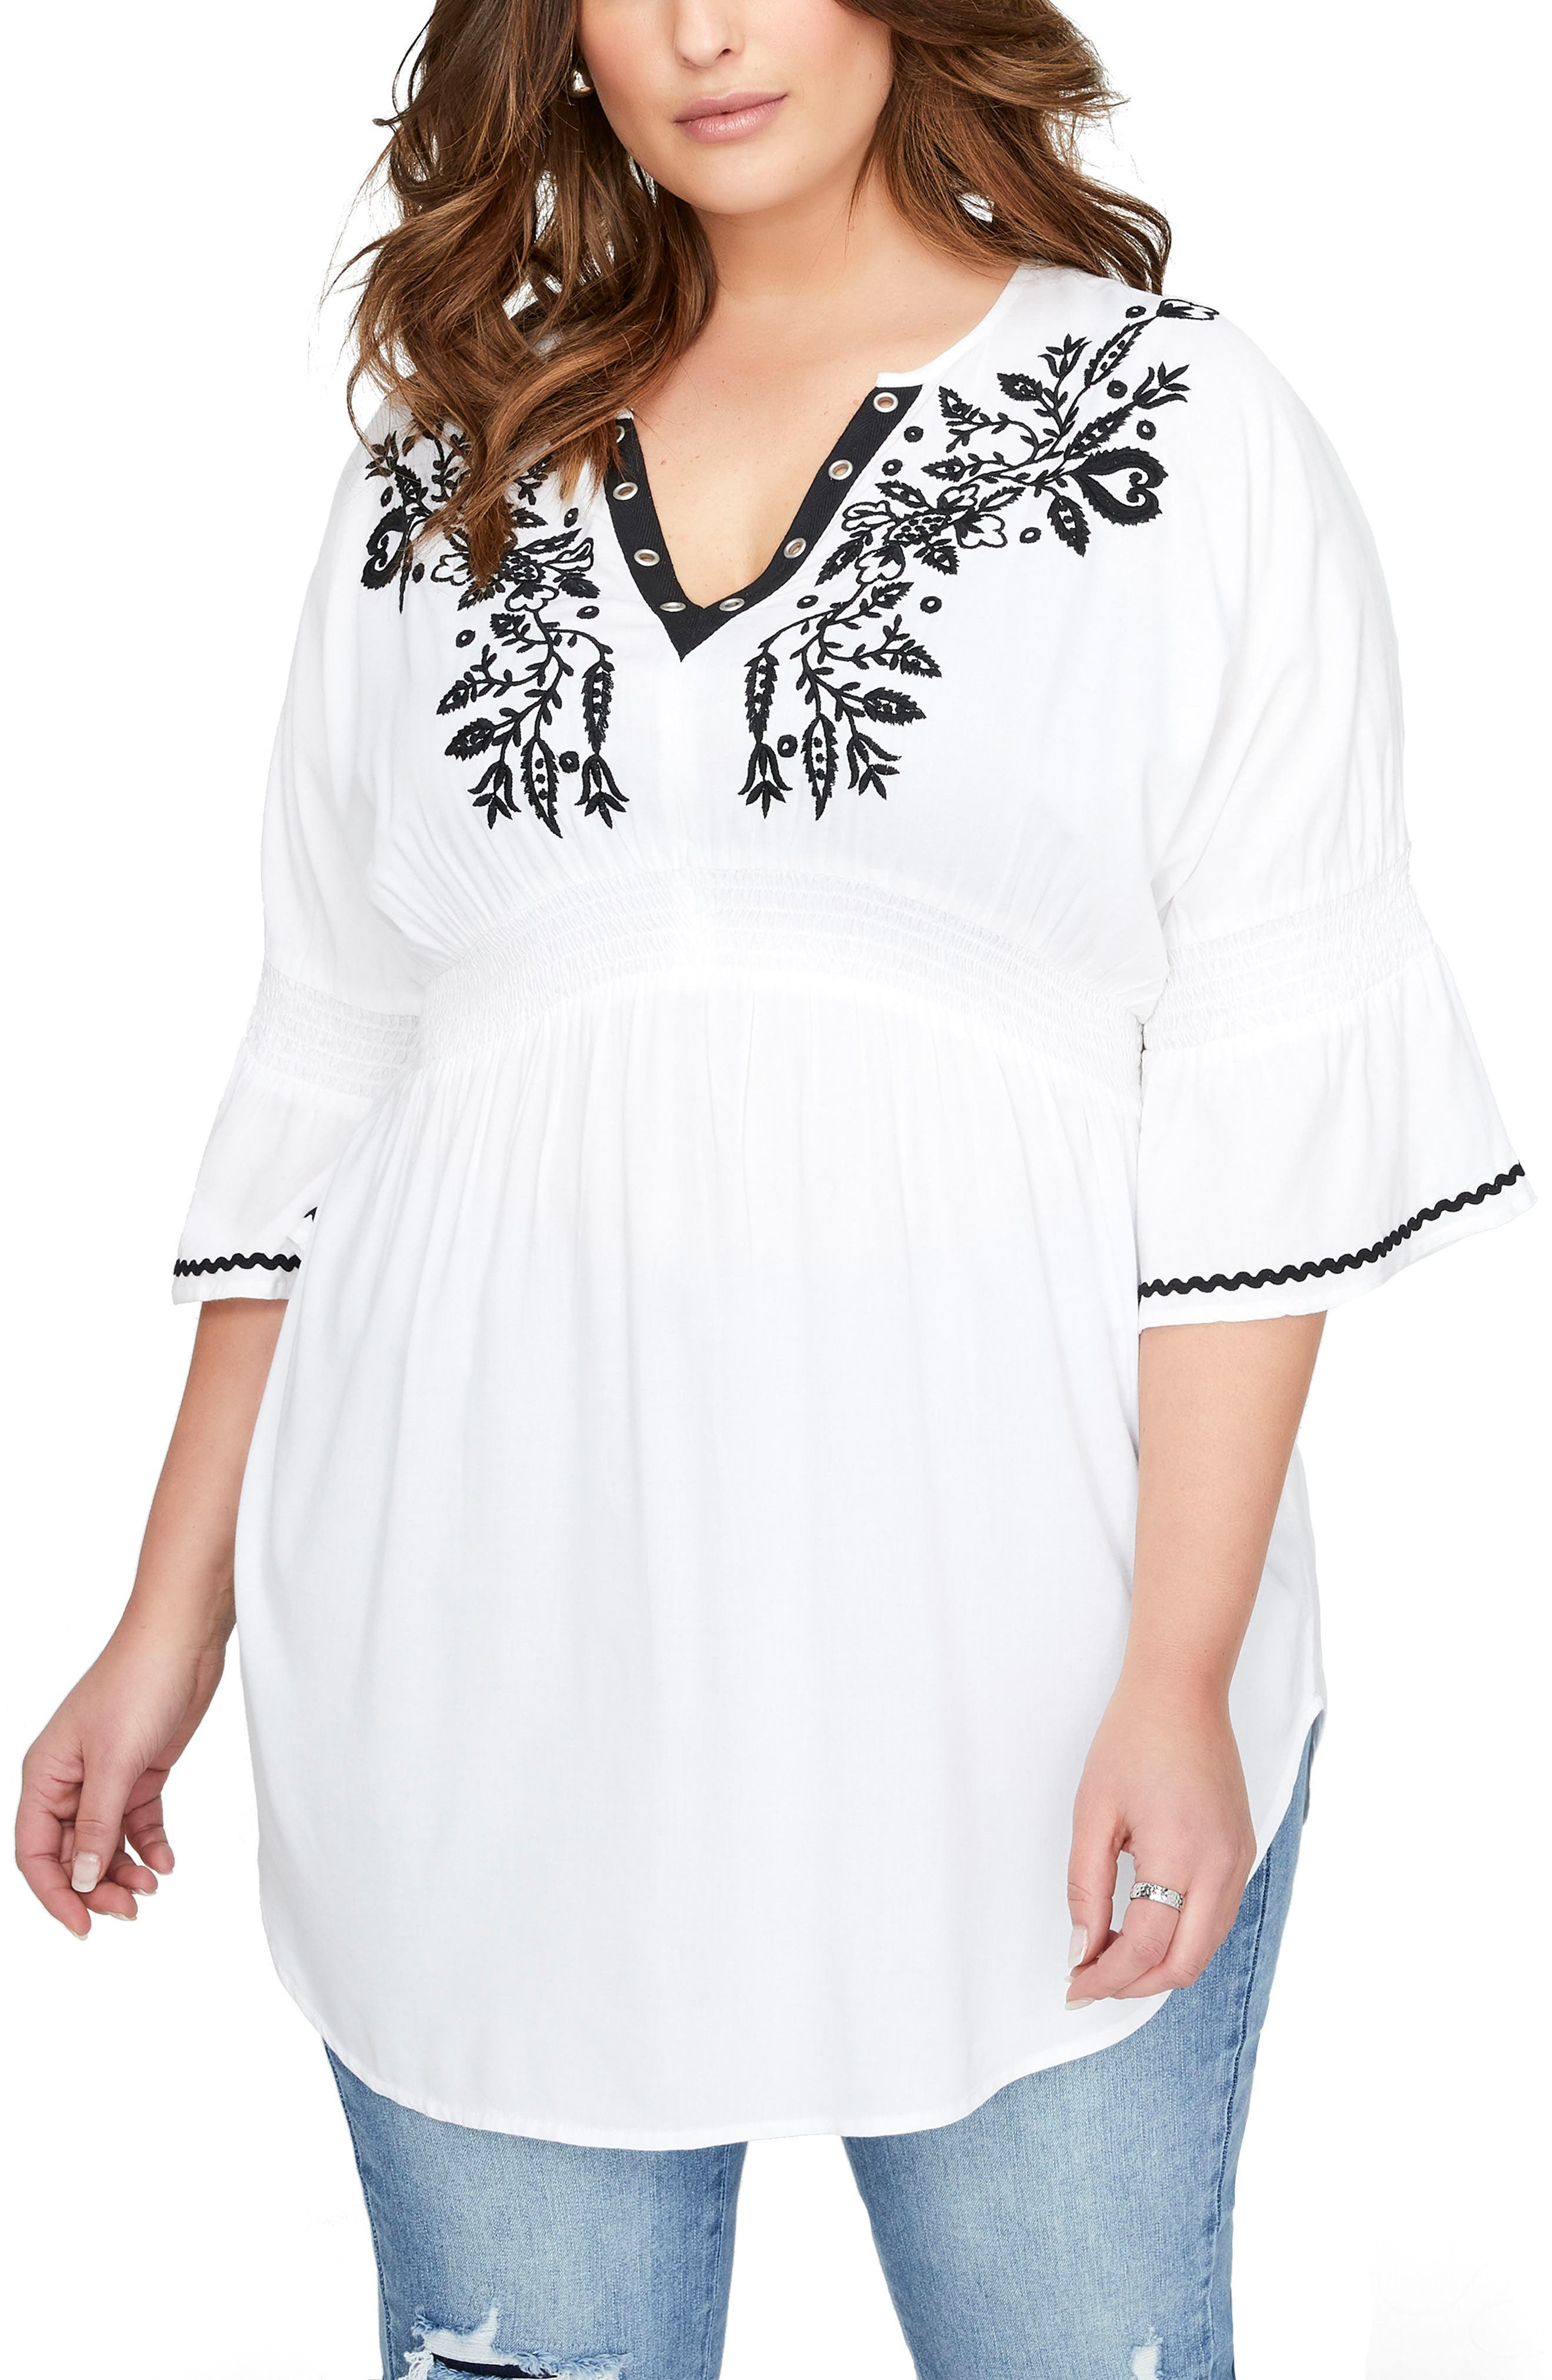 ADDITION ELLE LOVE AND LEGEND Embroidered Bell Sleeve Top (Plus Size)